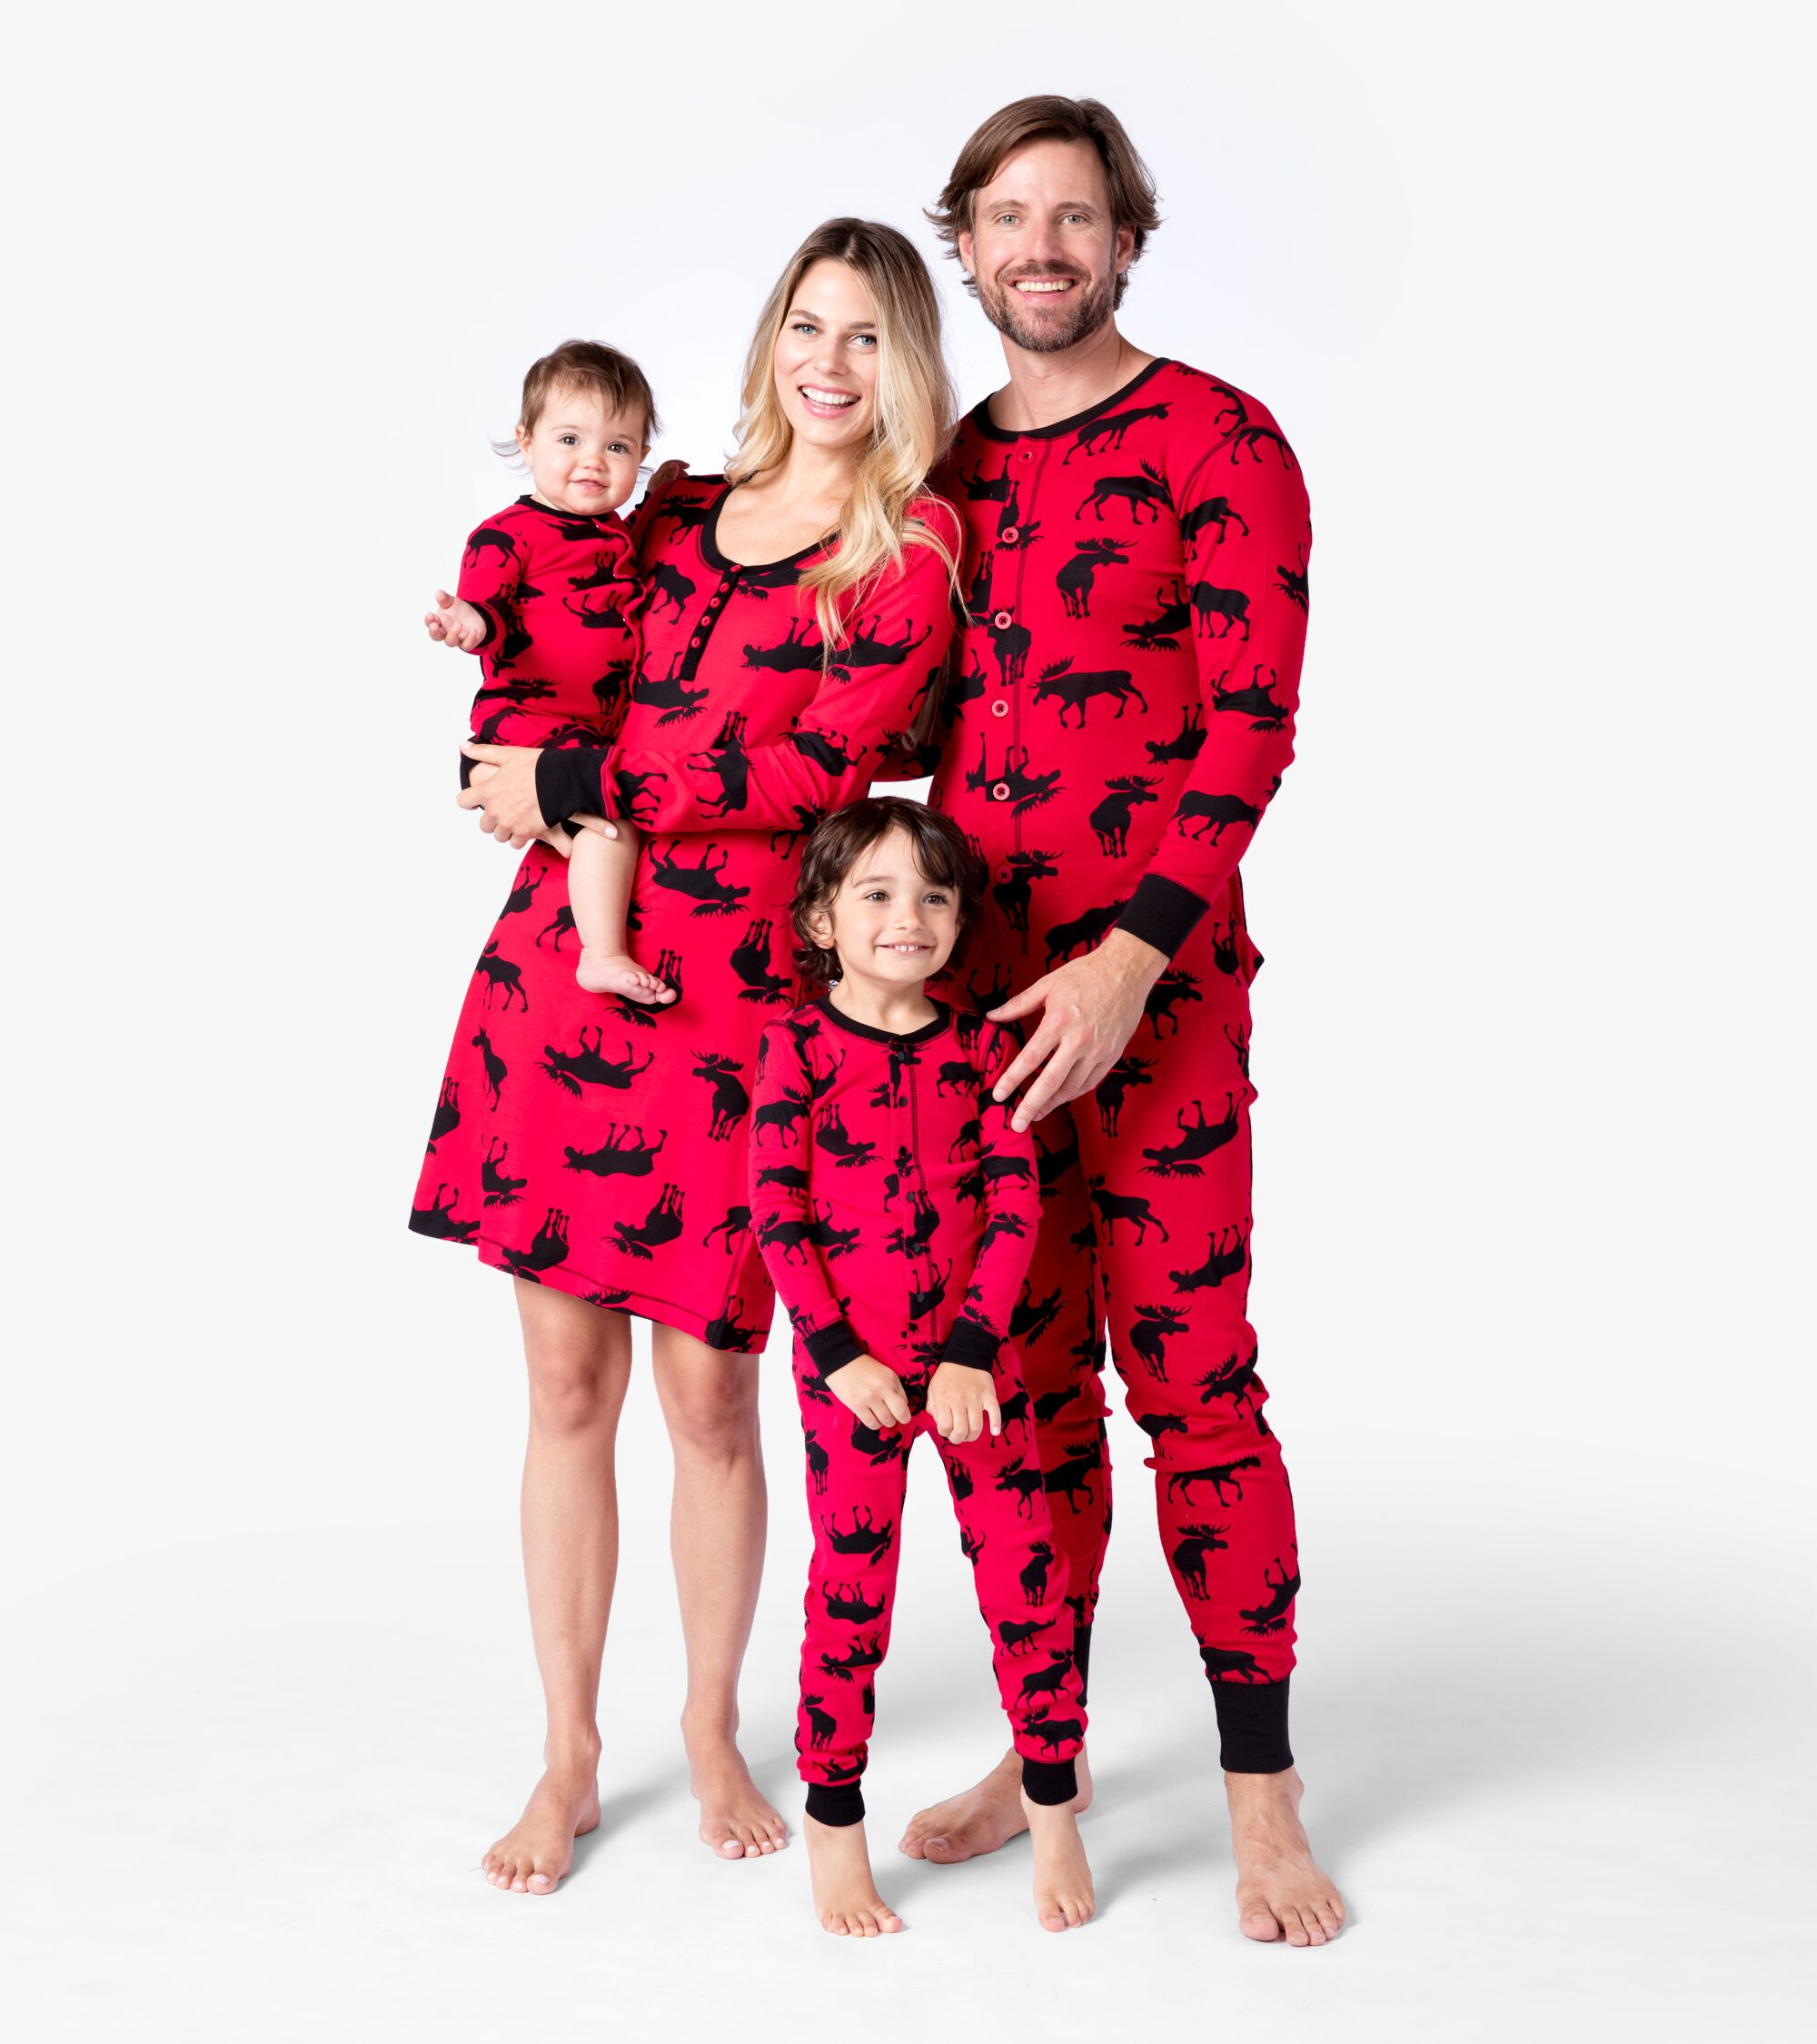 Image of family of four wearing flannel pajamas